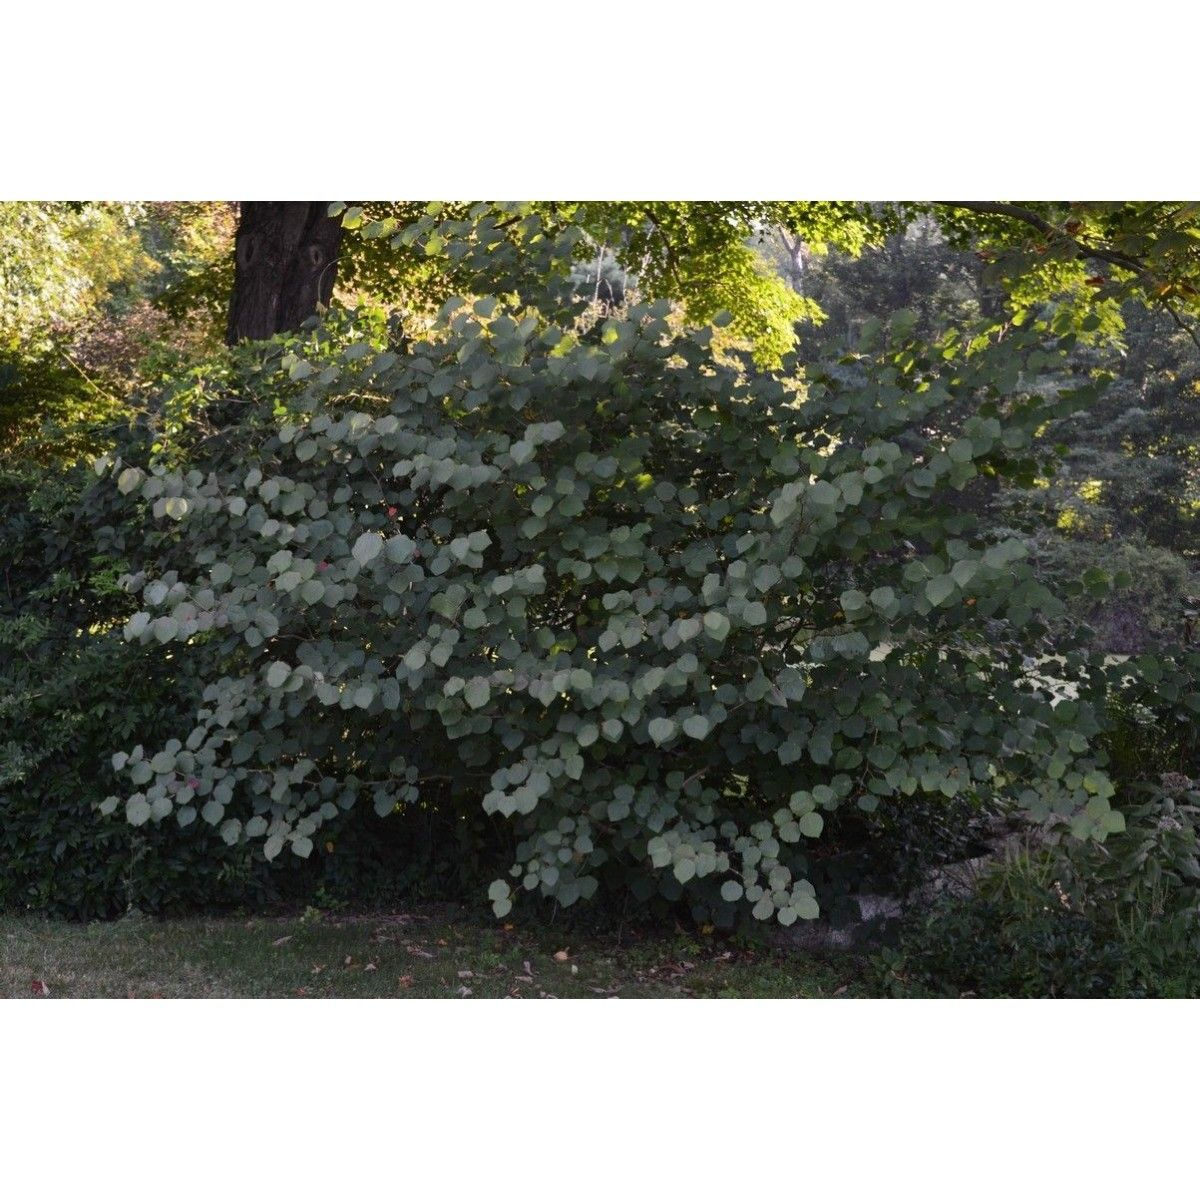 disanthus_cercidifolius_habit_-_boulder_farm_-_august_26_2015-3.jpg